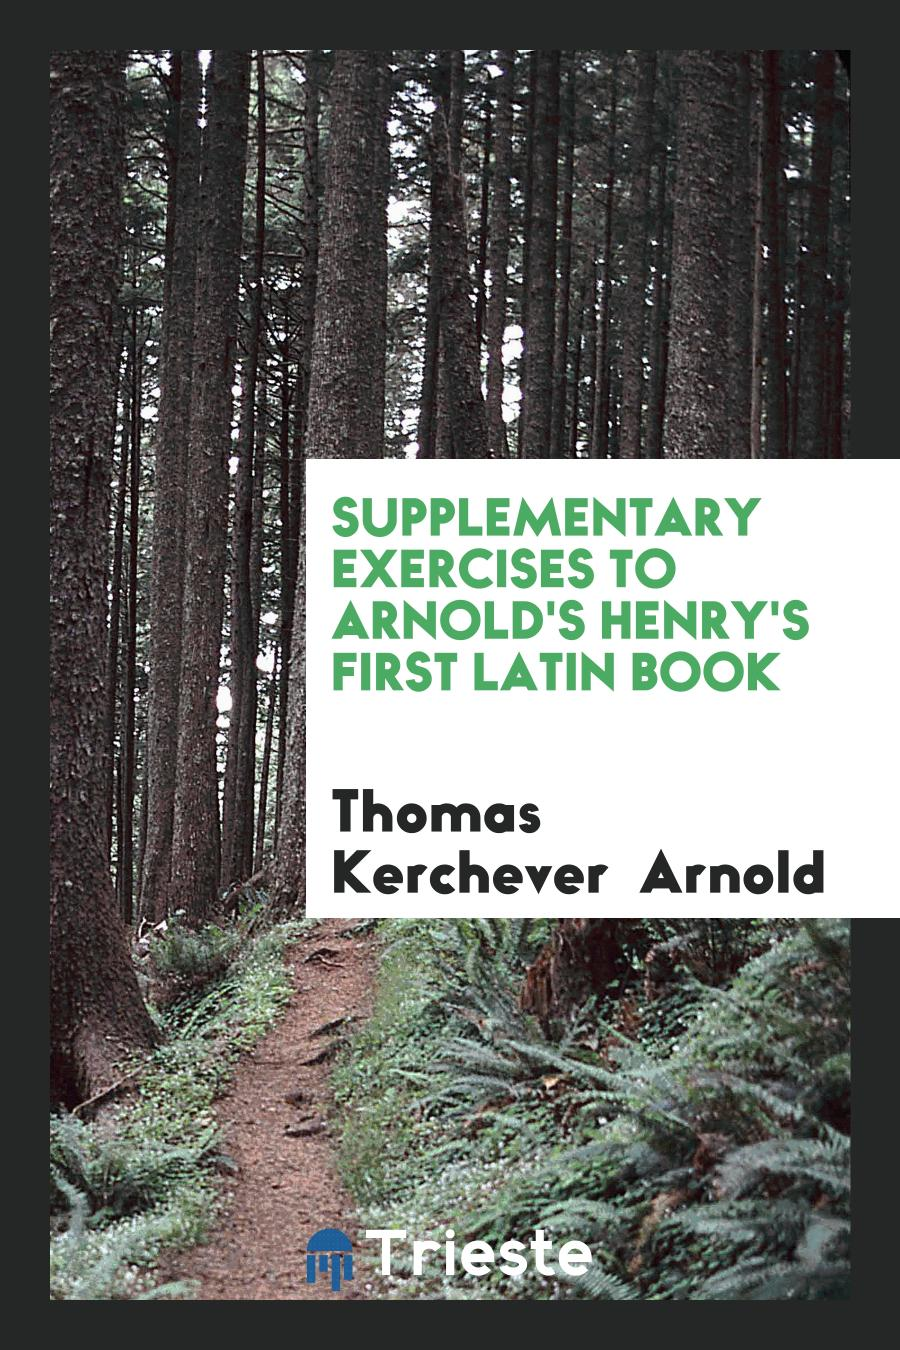 Supplementary exercises to Arnold's Henry's First Latin Book